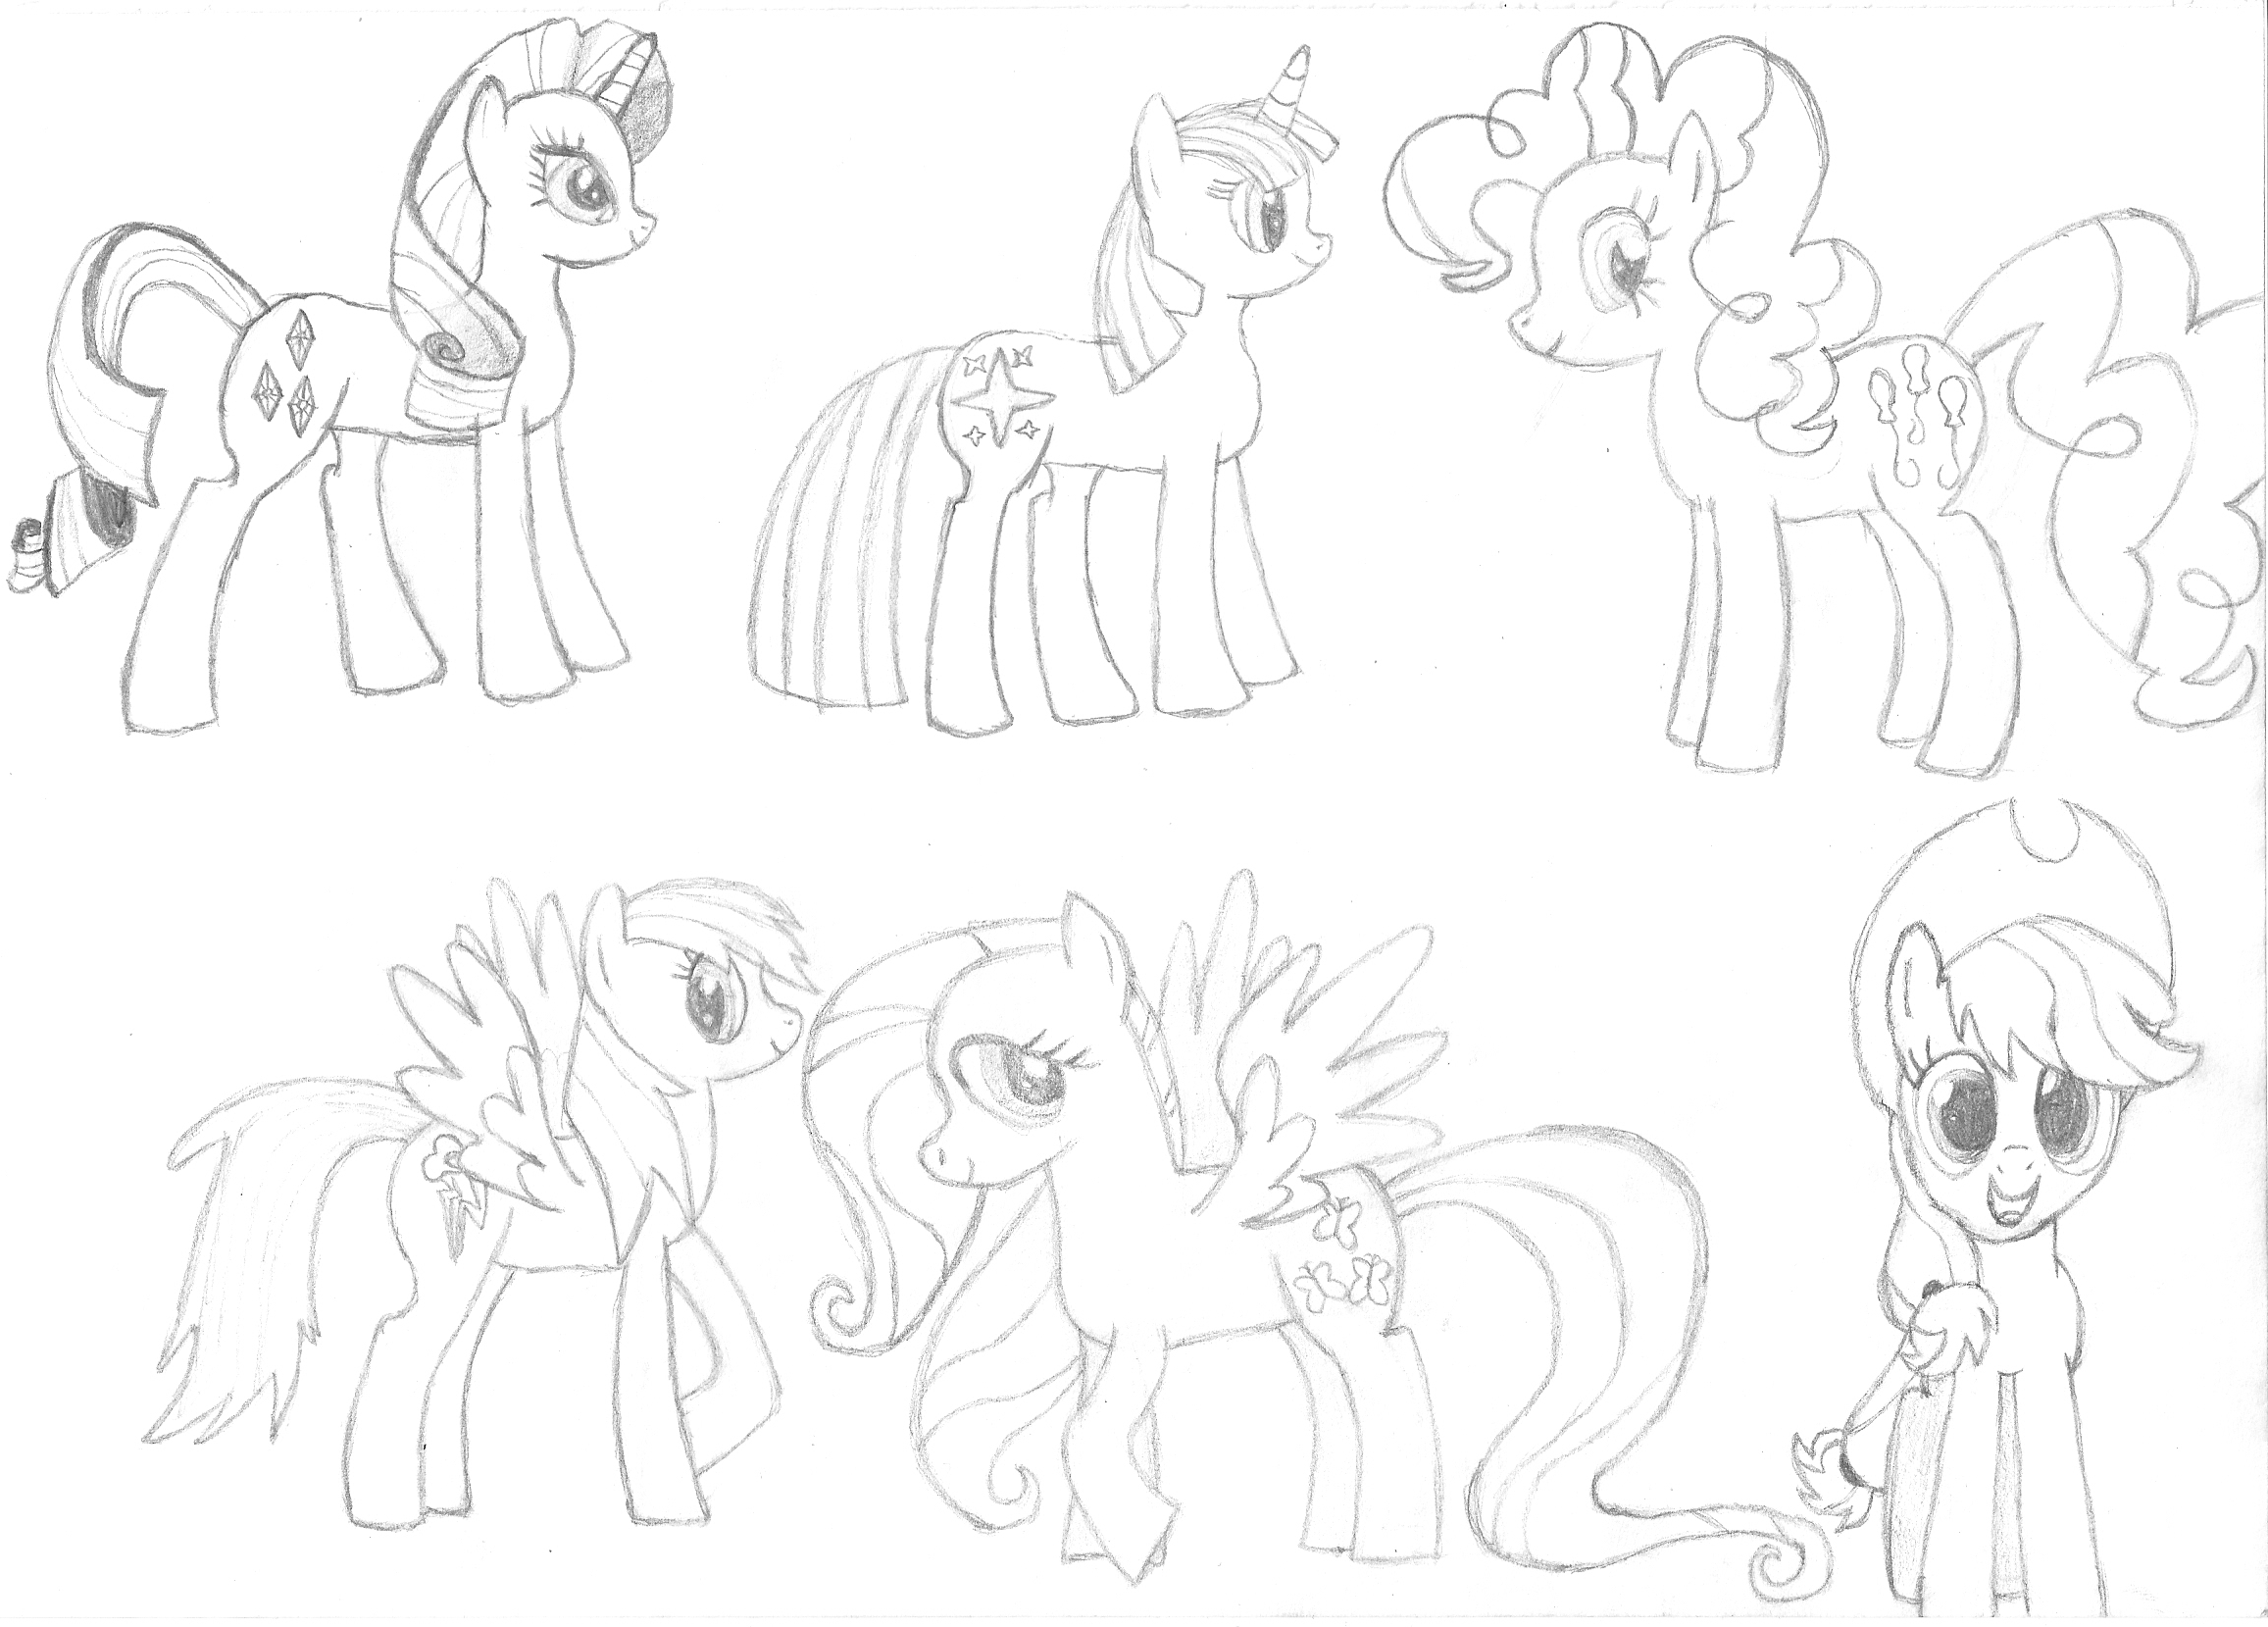 drawing mlp characters mlp alicorn pony cringe crop base vector pony drawing drawing characters mlp